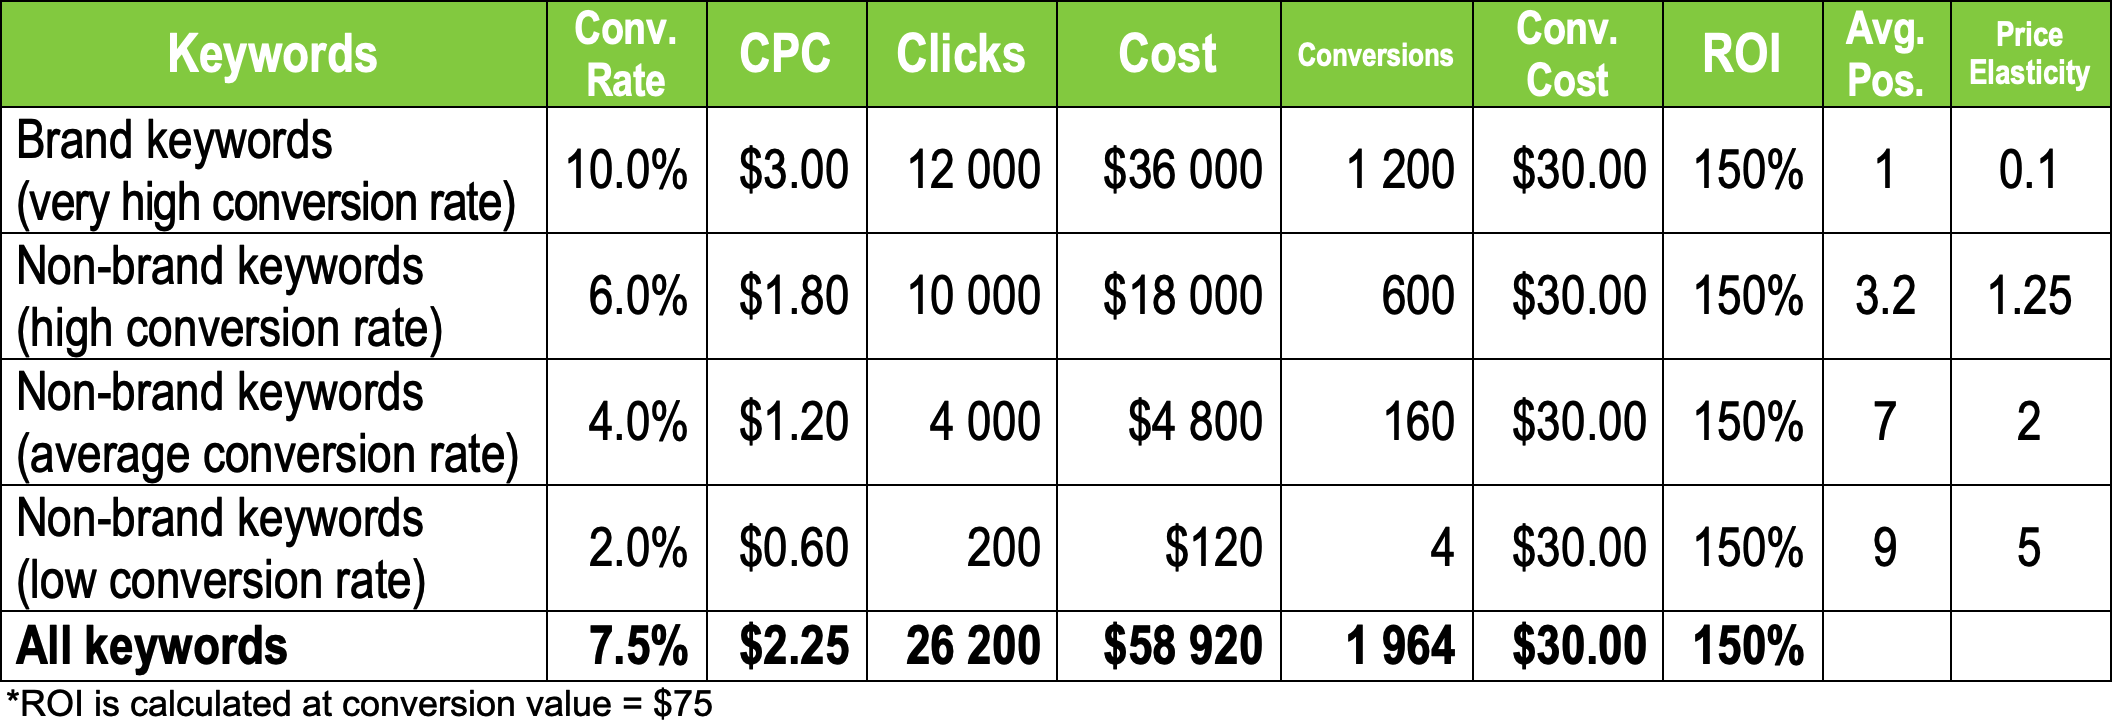 Profit-Driven PPC Management in Practice